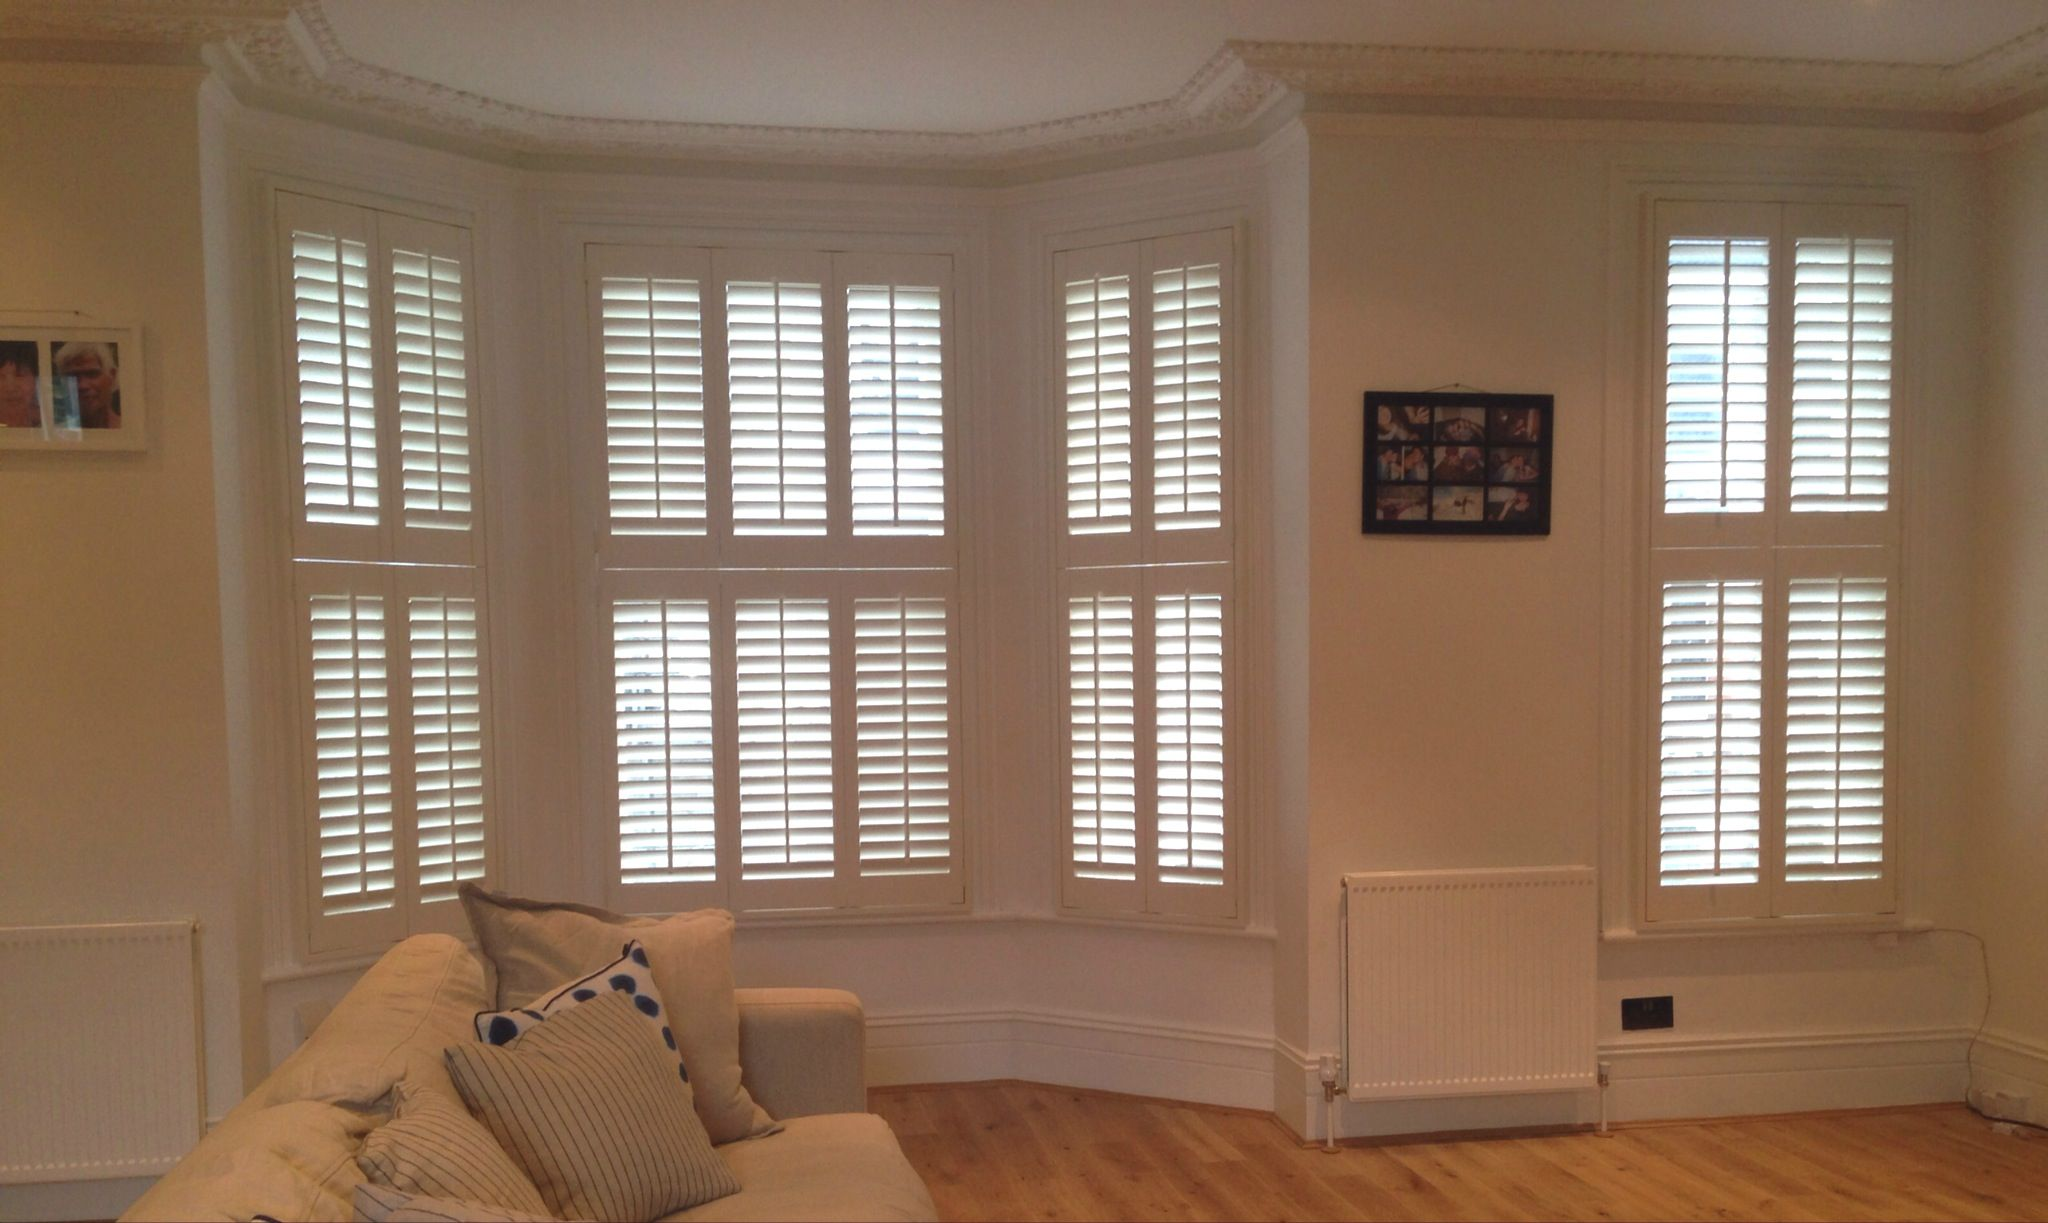 Home shutter gallery tier on tier shutters tier on tier shutters - Very Traditional Central Tilt Rod Tier On Tier Wooden Shutters In This 3 Paneled Bay